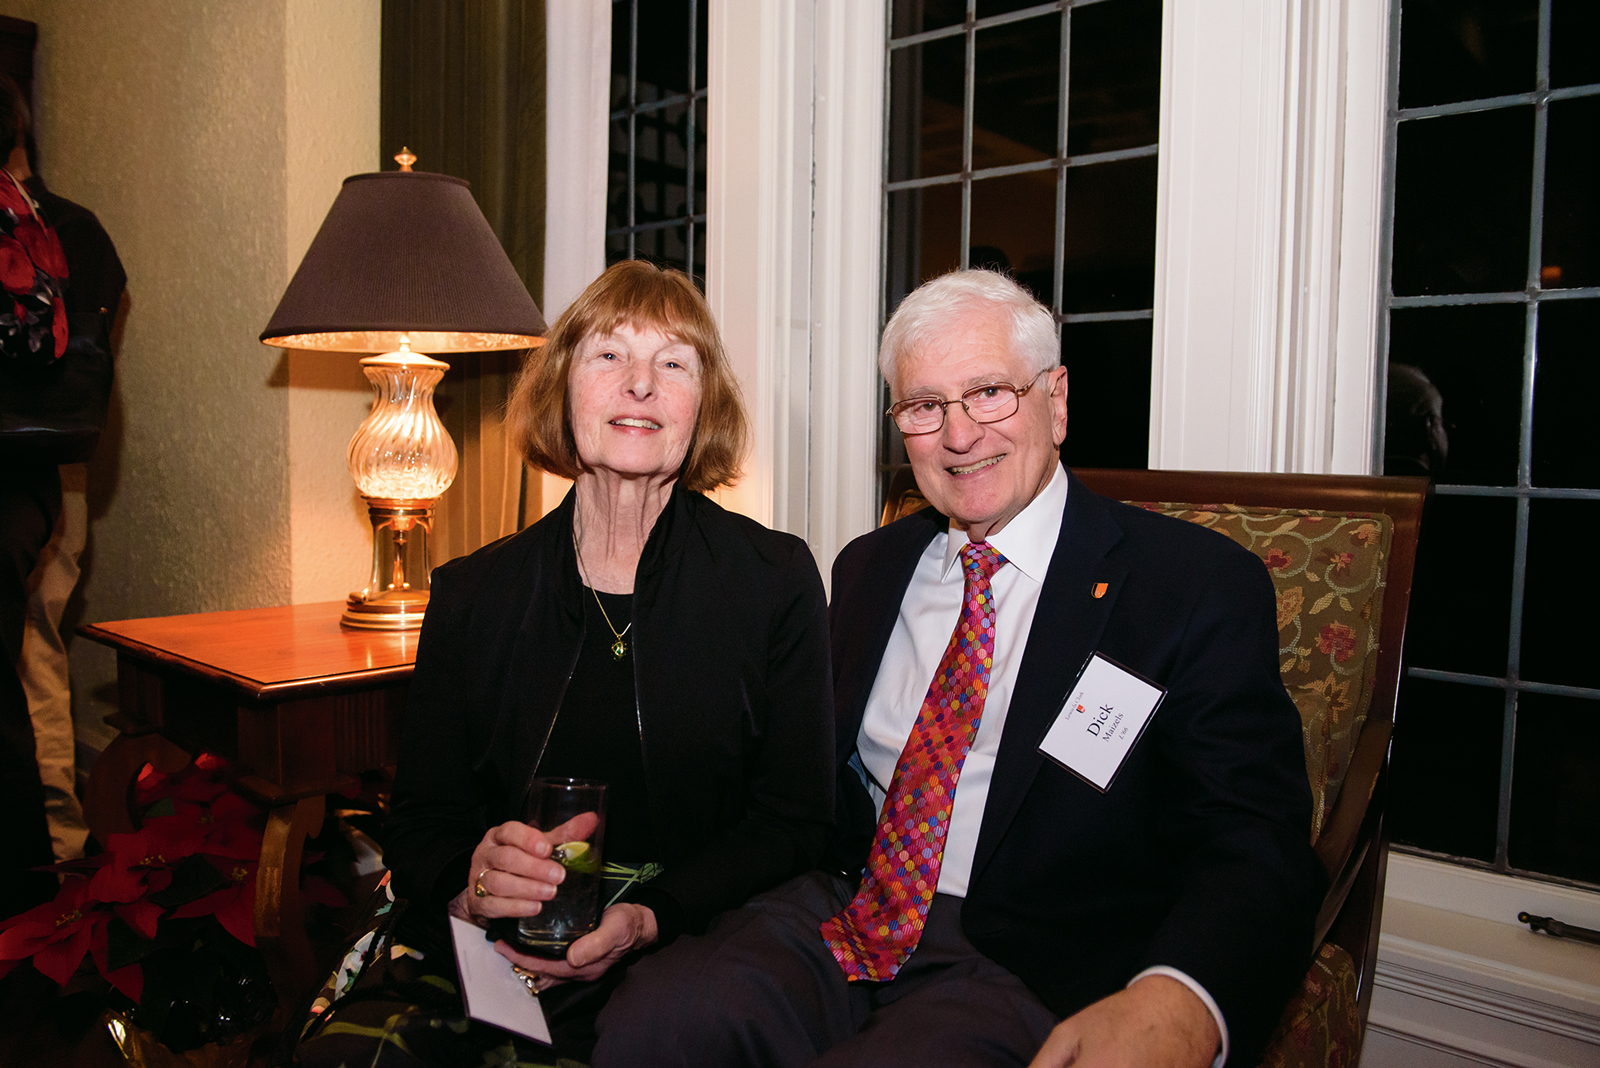 Dick Maizels JD '66 and Harriet Maizels.